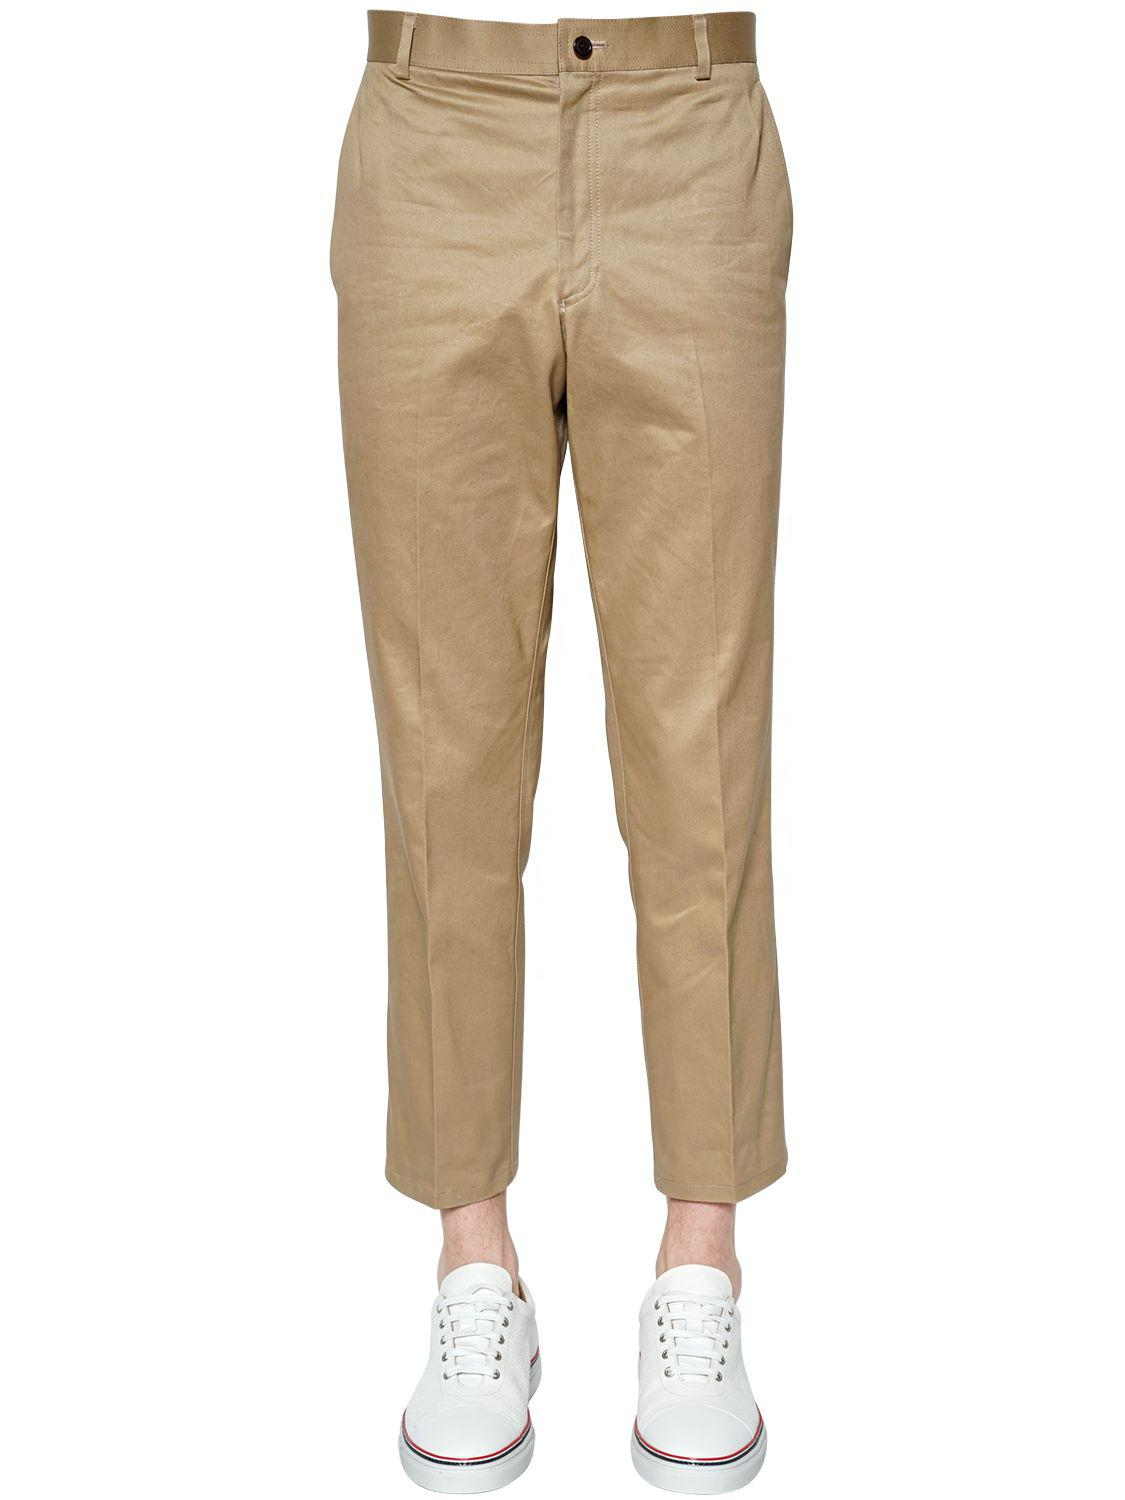 840d6bc6a0 Lyst - Thom Browne Light Cotton Twill Chino Pants in Natural for Men